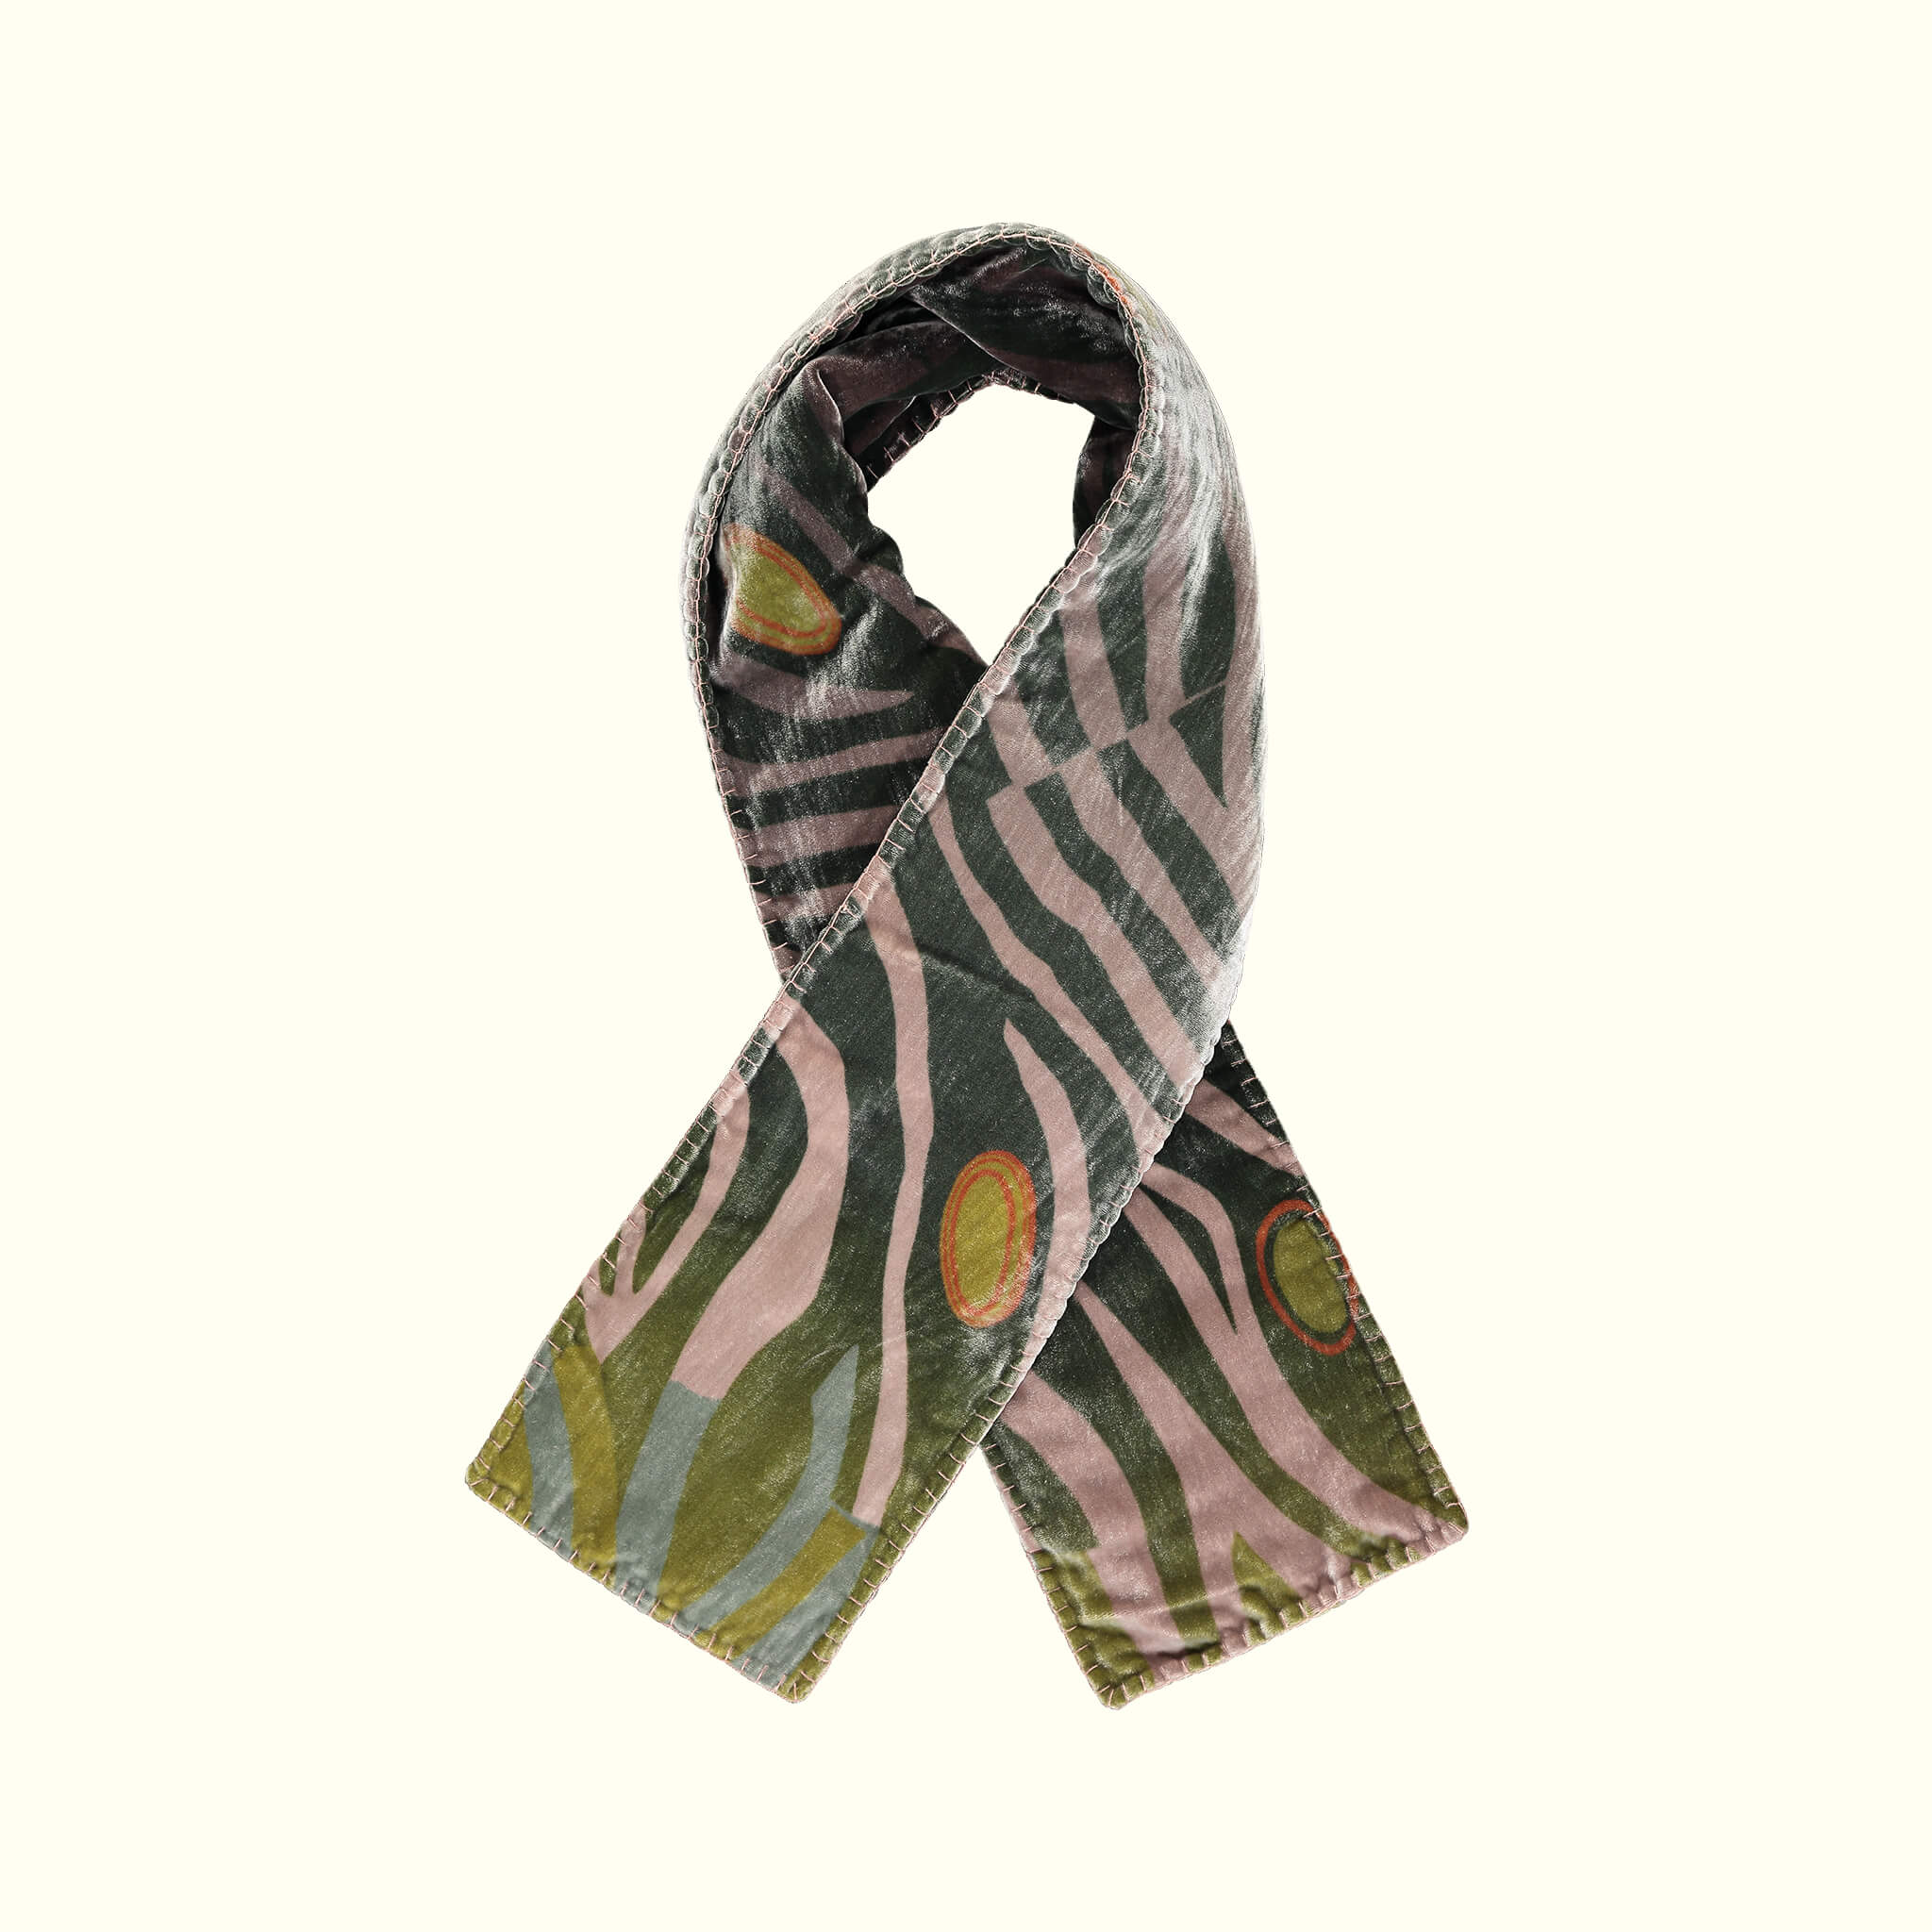 A luxury British silk velvet scarf by GVE in olive Dune print design.